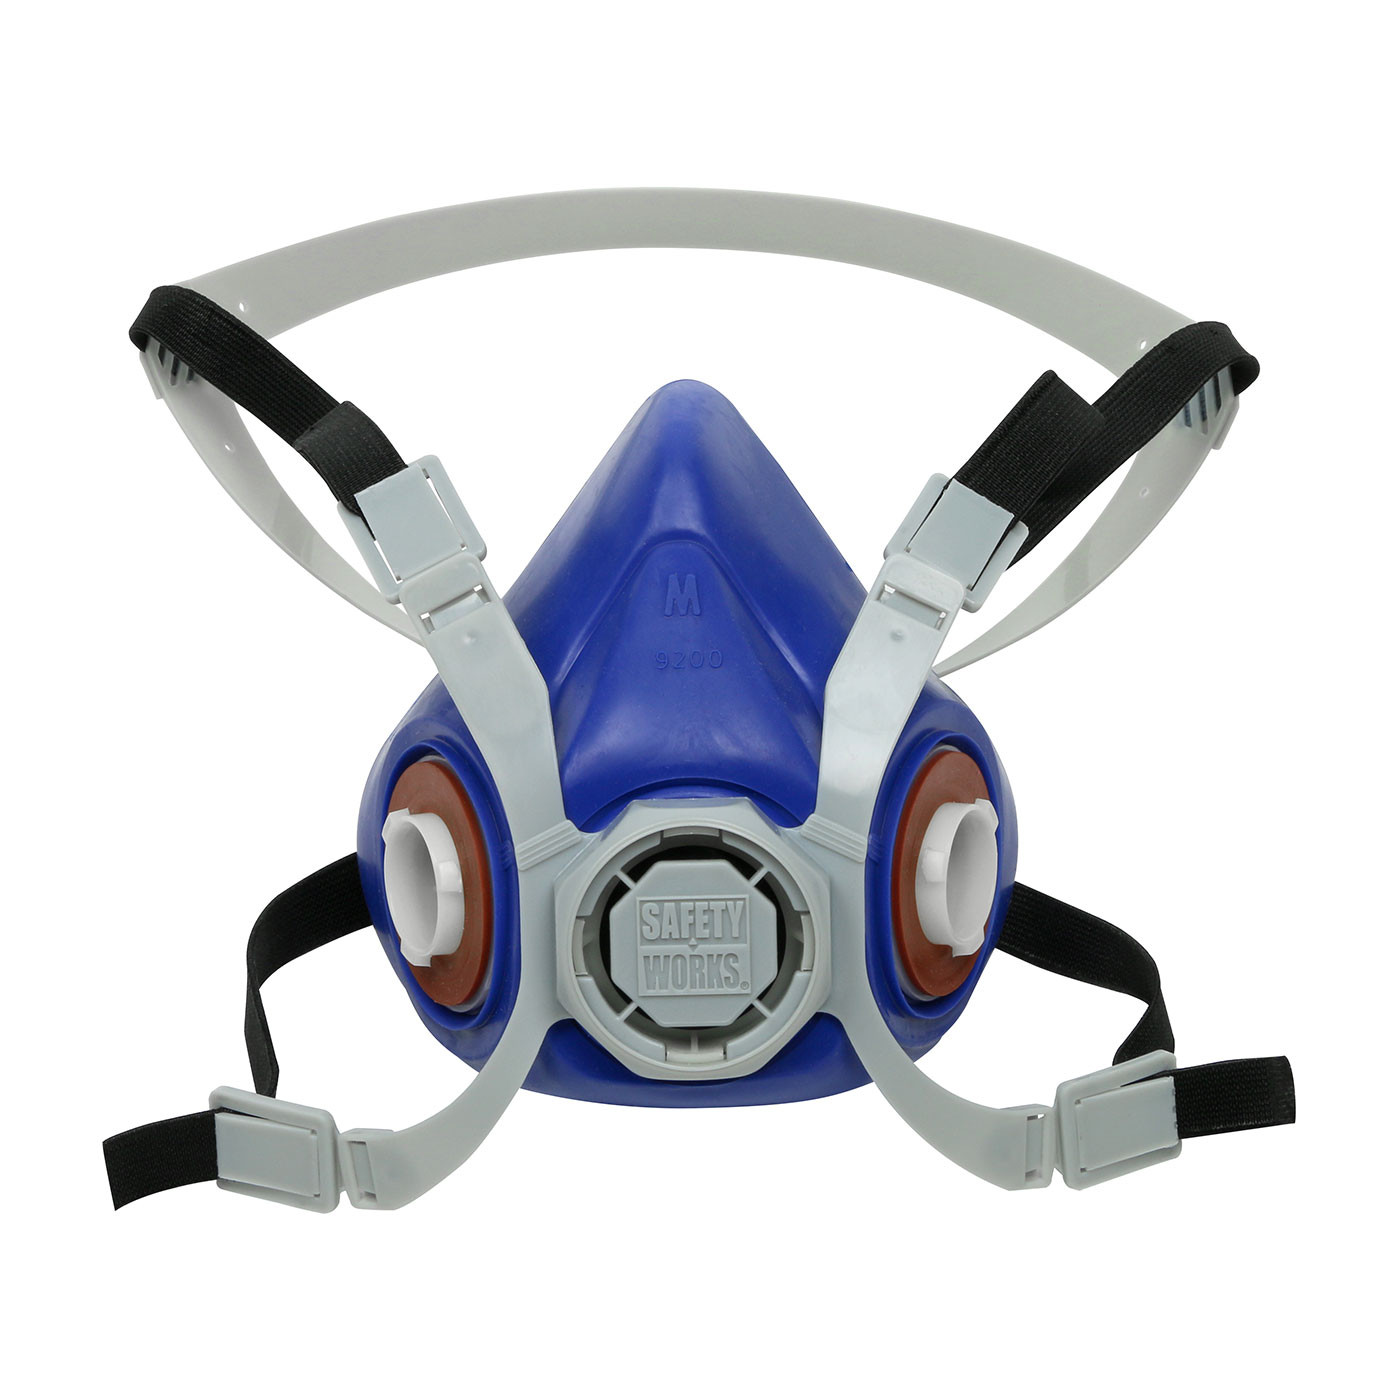 PIP Safety Works Half mask reusable respirator